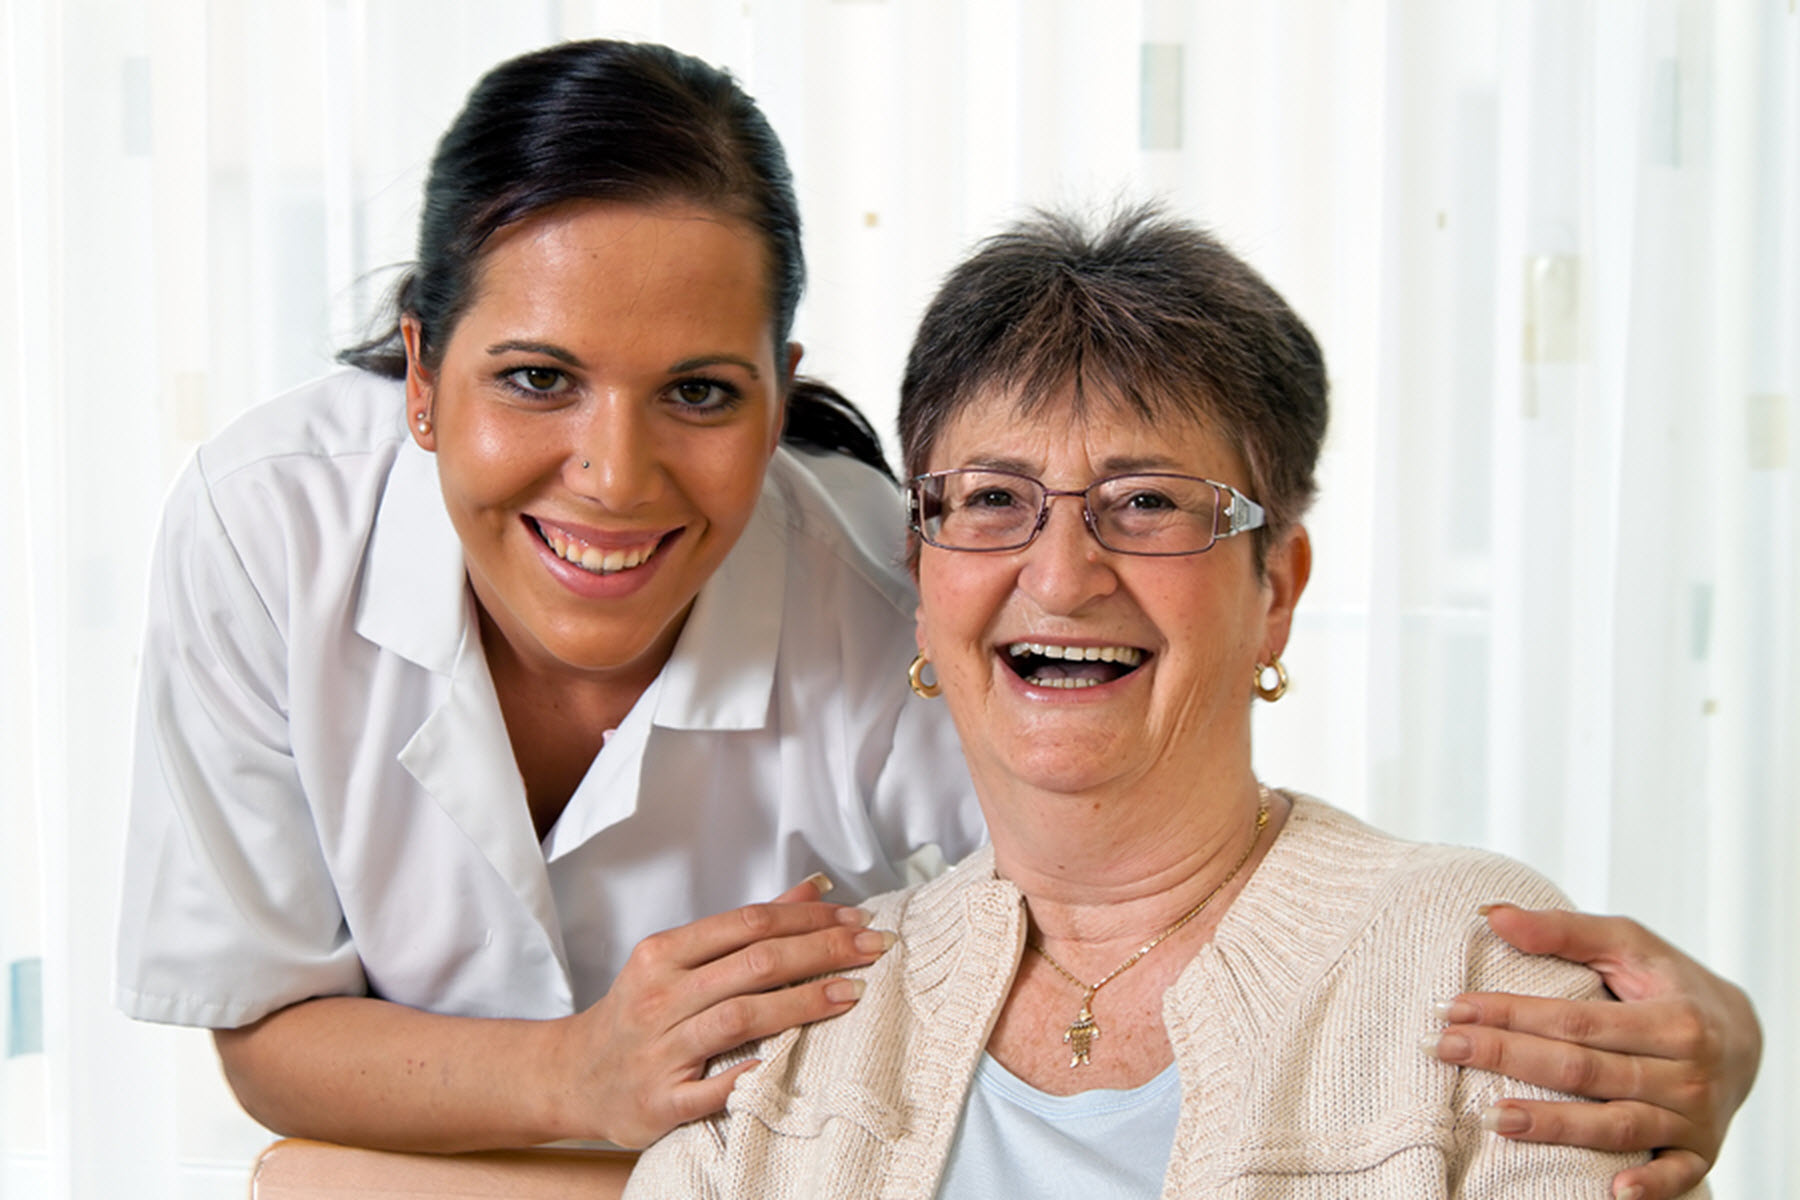 Elderly Care in Monroeville PA: Benefits of Home Care